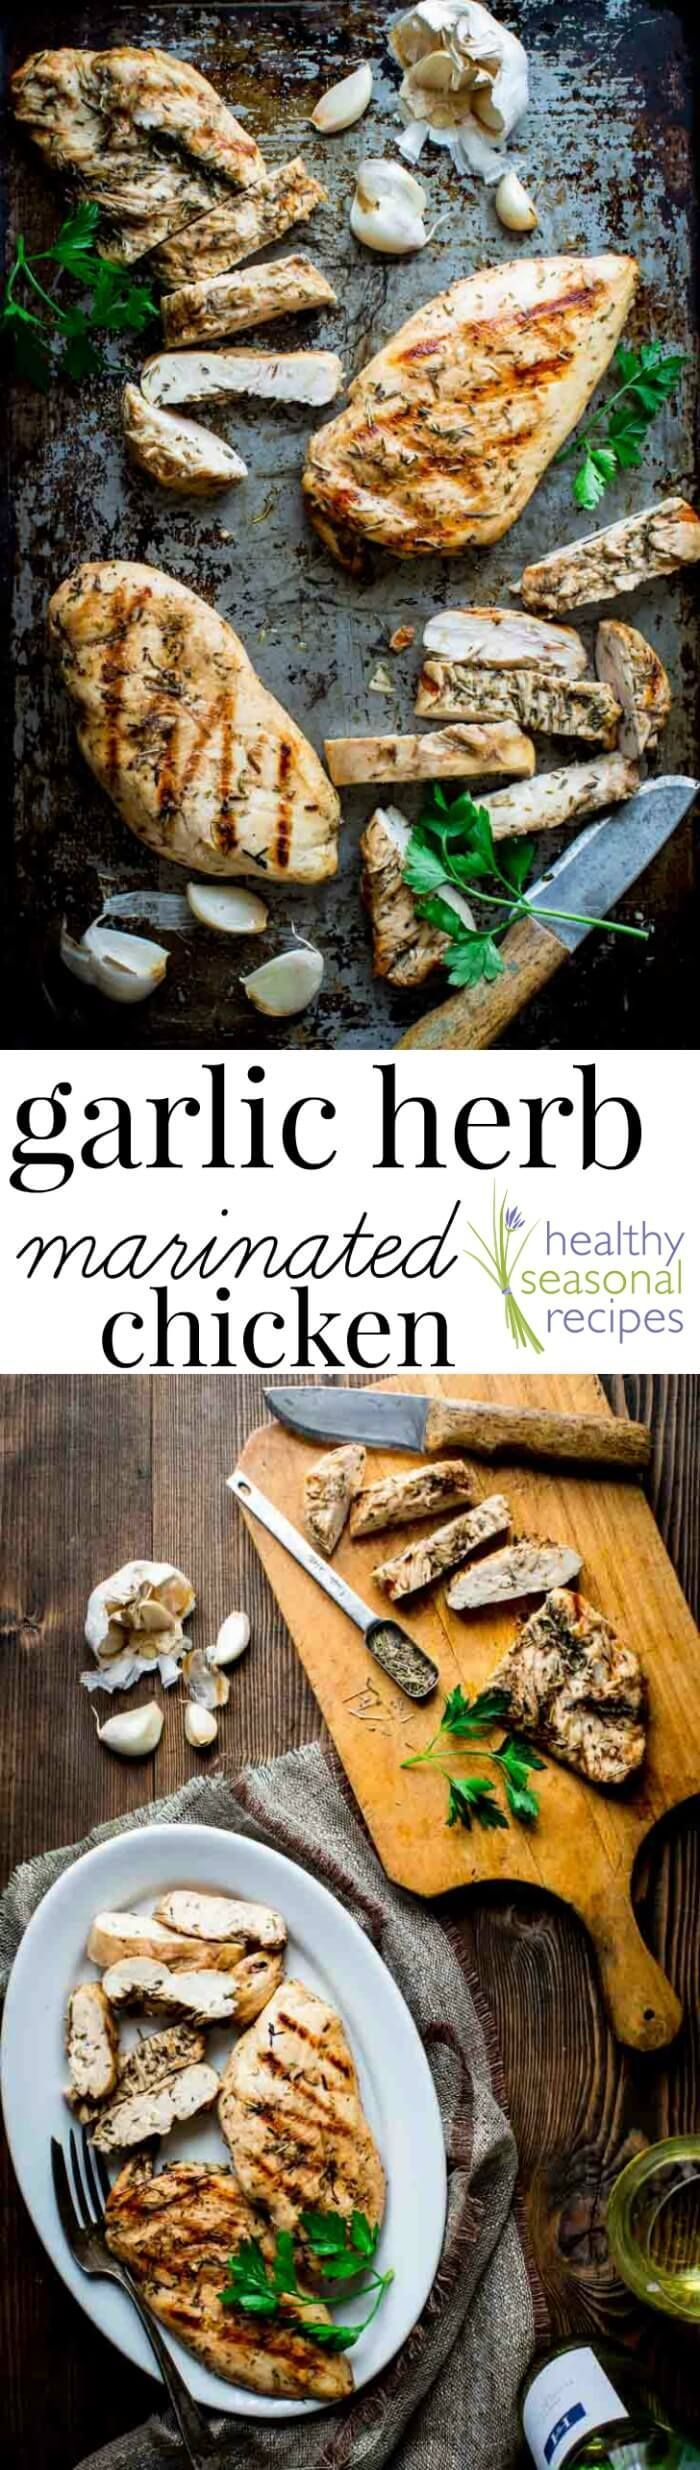 With this Garlic Herb Marinated Chicken recipe you will never have to eat bland dry grilled chicken again! Just 6 ingredients (including salt) and only 20 minutes of prep will give you a gluten-free, dairy-free and low-carb entree that literally sings with flavor. And check out my no-muss-no-fuss way to marinade the chicken!